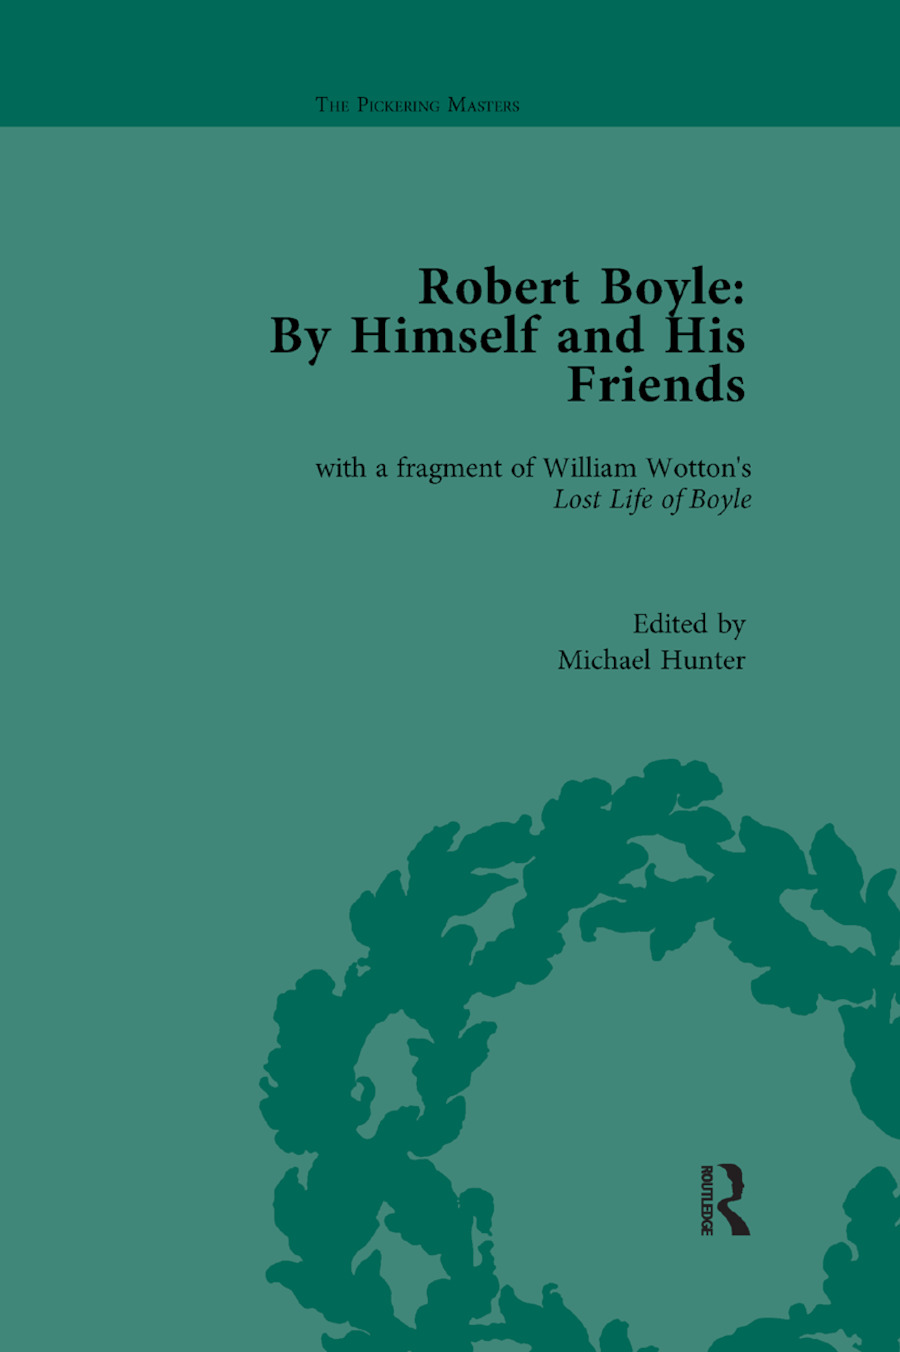 Robert Boyle: By Himself and His Friends: With a Fragment of William Wotton's 'Lost Life of Boyle' book cover